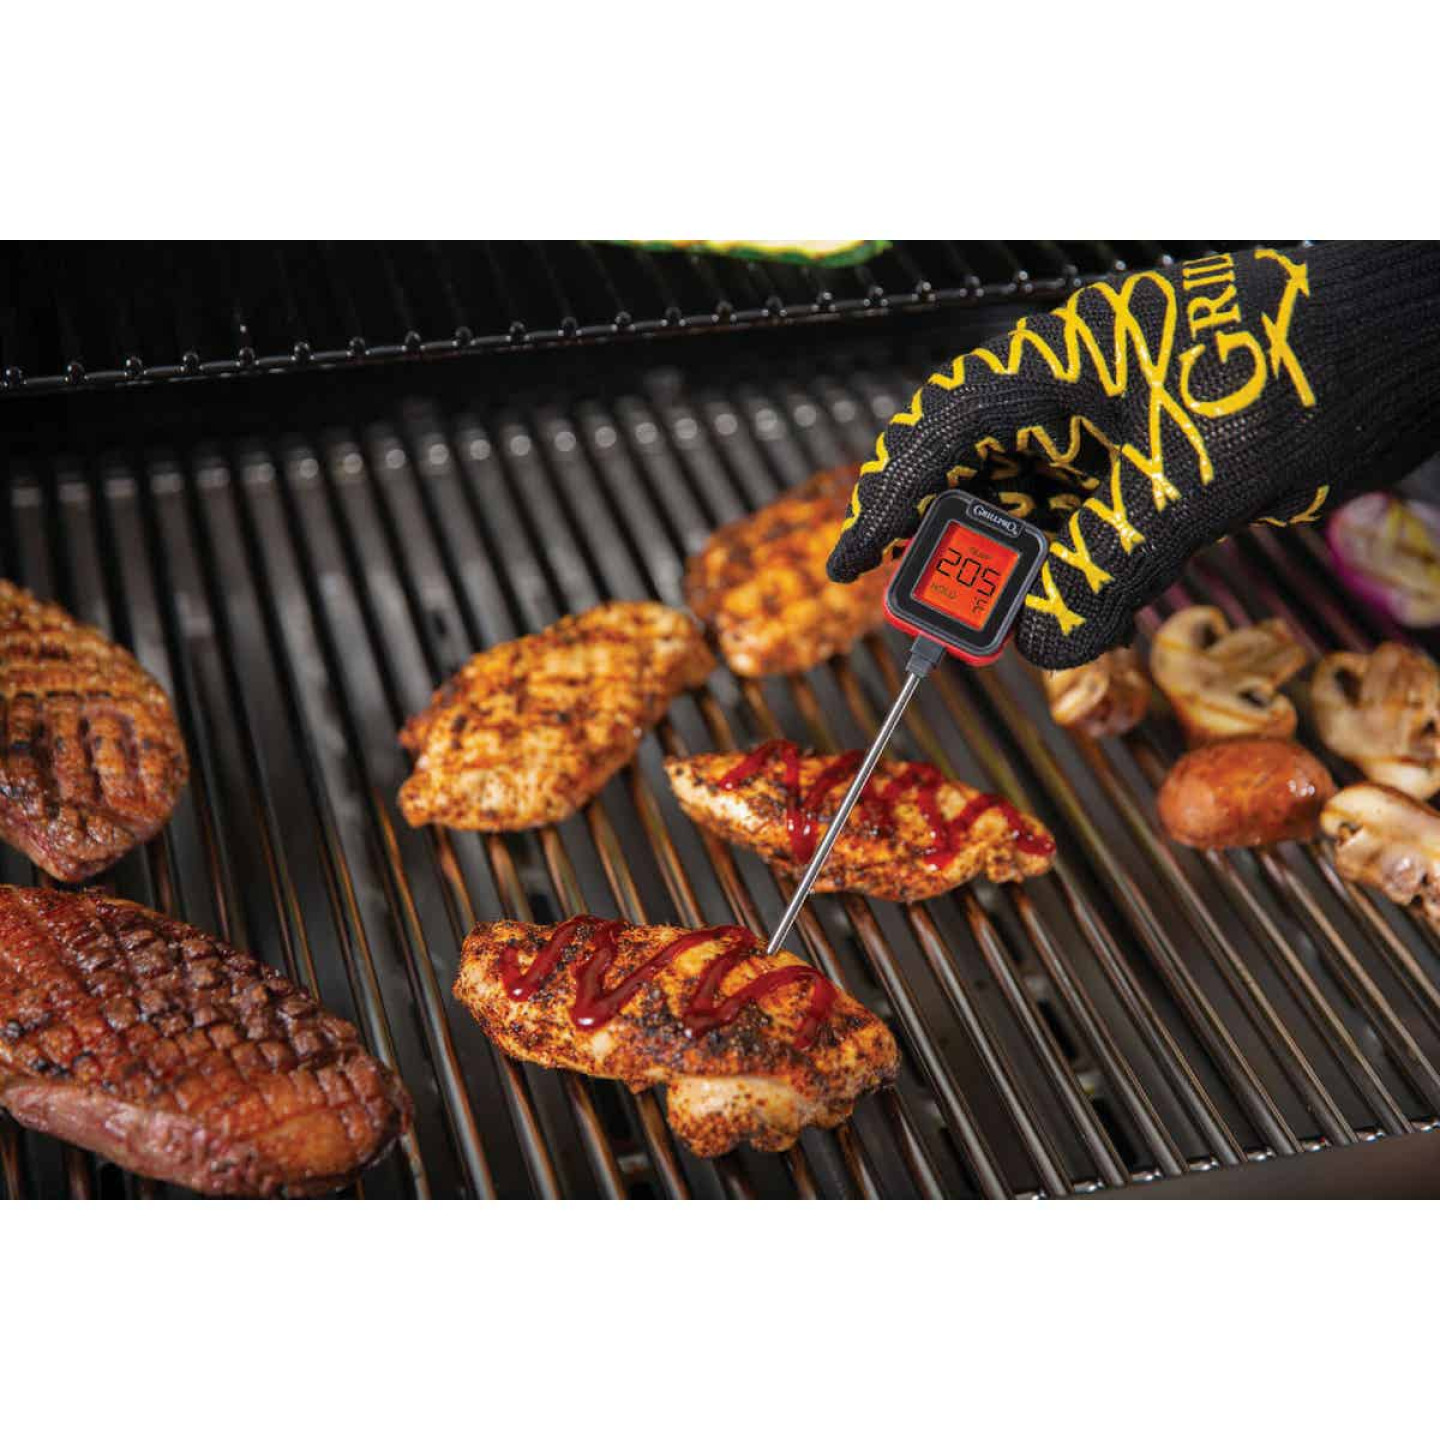 GrillPro Instant Read Probe Thermometer Image 2